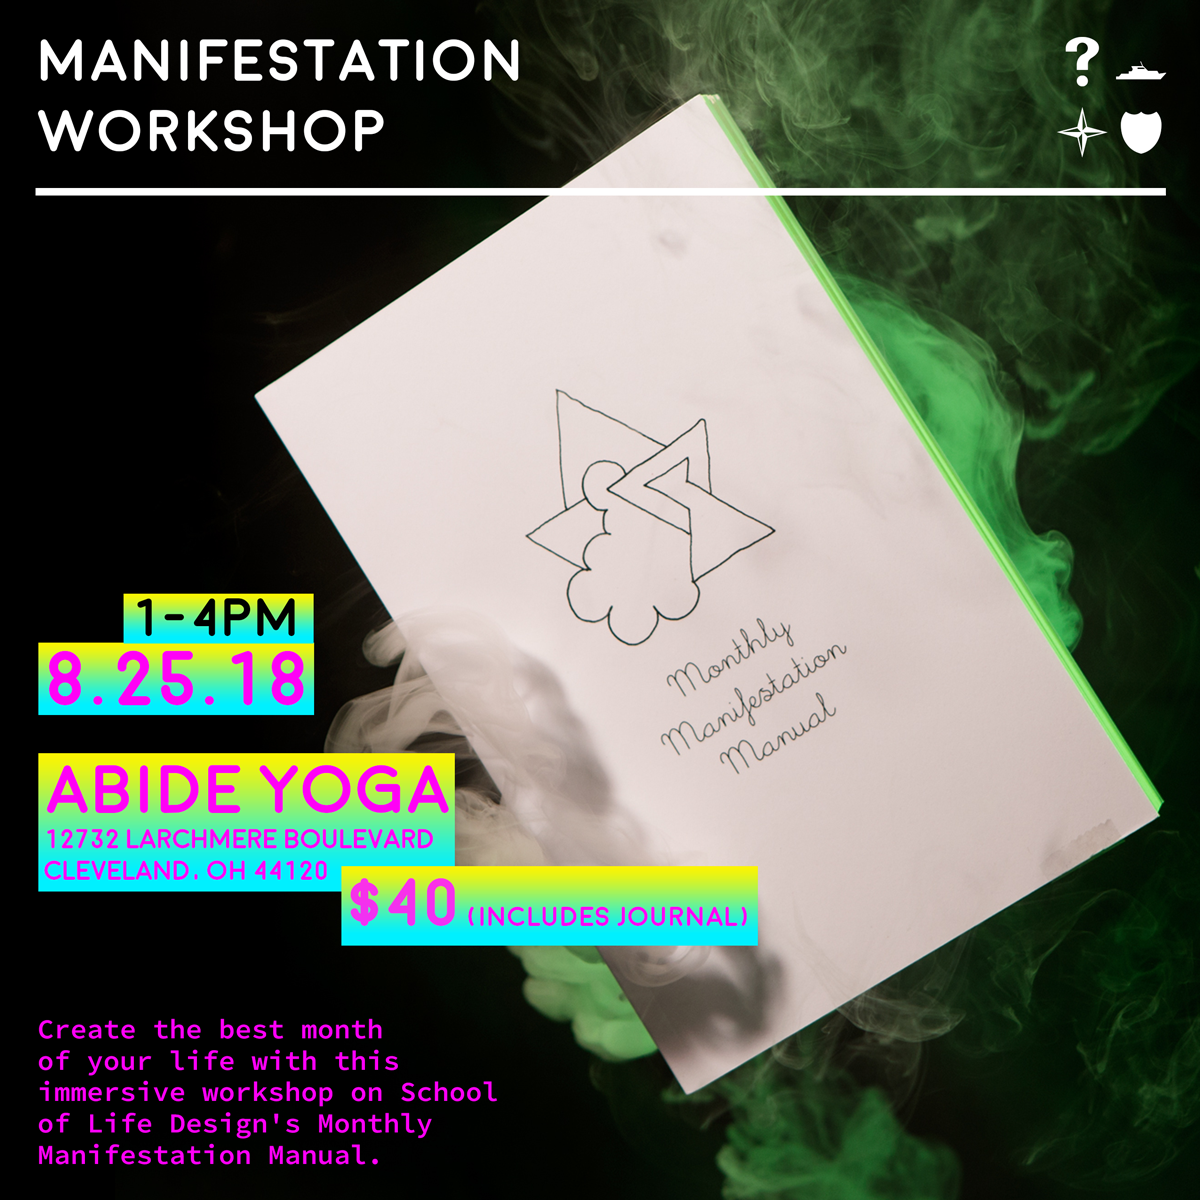 Manifestation as a Daily Practice     Create the best month of your life with this immersive workshop on School of Life Design's Monthly Manifestation Manual.    8.25.18 1-4pm    $40, includes journal    Join Jessica Mullen and Kelly Cree of School of Life Design for this 3-hour immersive manifestation course which includes a copy of their 31-day planner, the Monthly Manifestation Manual. This workshop focuses not just on creating the physical things you want to see in your life but also on finding peace with what you already have in the here and now.   The trick to manifestation is to know what you want but be happy without it. Using exercises that strengthen self love, compassion, intuition, gratitude and joy, the MMM will leave you so happy with your life as it is that what you want has no choice but to come to you. Become a magnet for desires by realizing life already is the way you want to be.  This workshop will consist of a brief lecture, individual working time, guided meditation, and small group activities. Bring your favorite pens or markers and an open mind, and get ready to have the best month of your life!  more info  or  to register